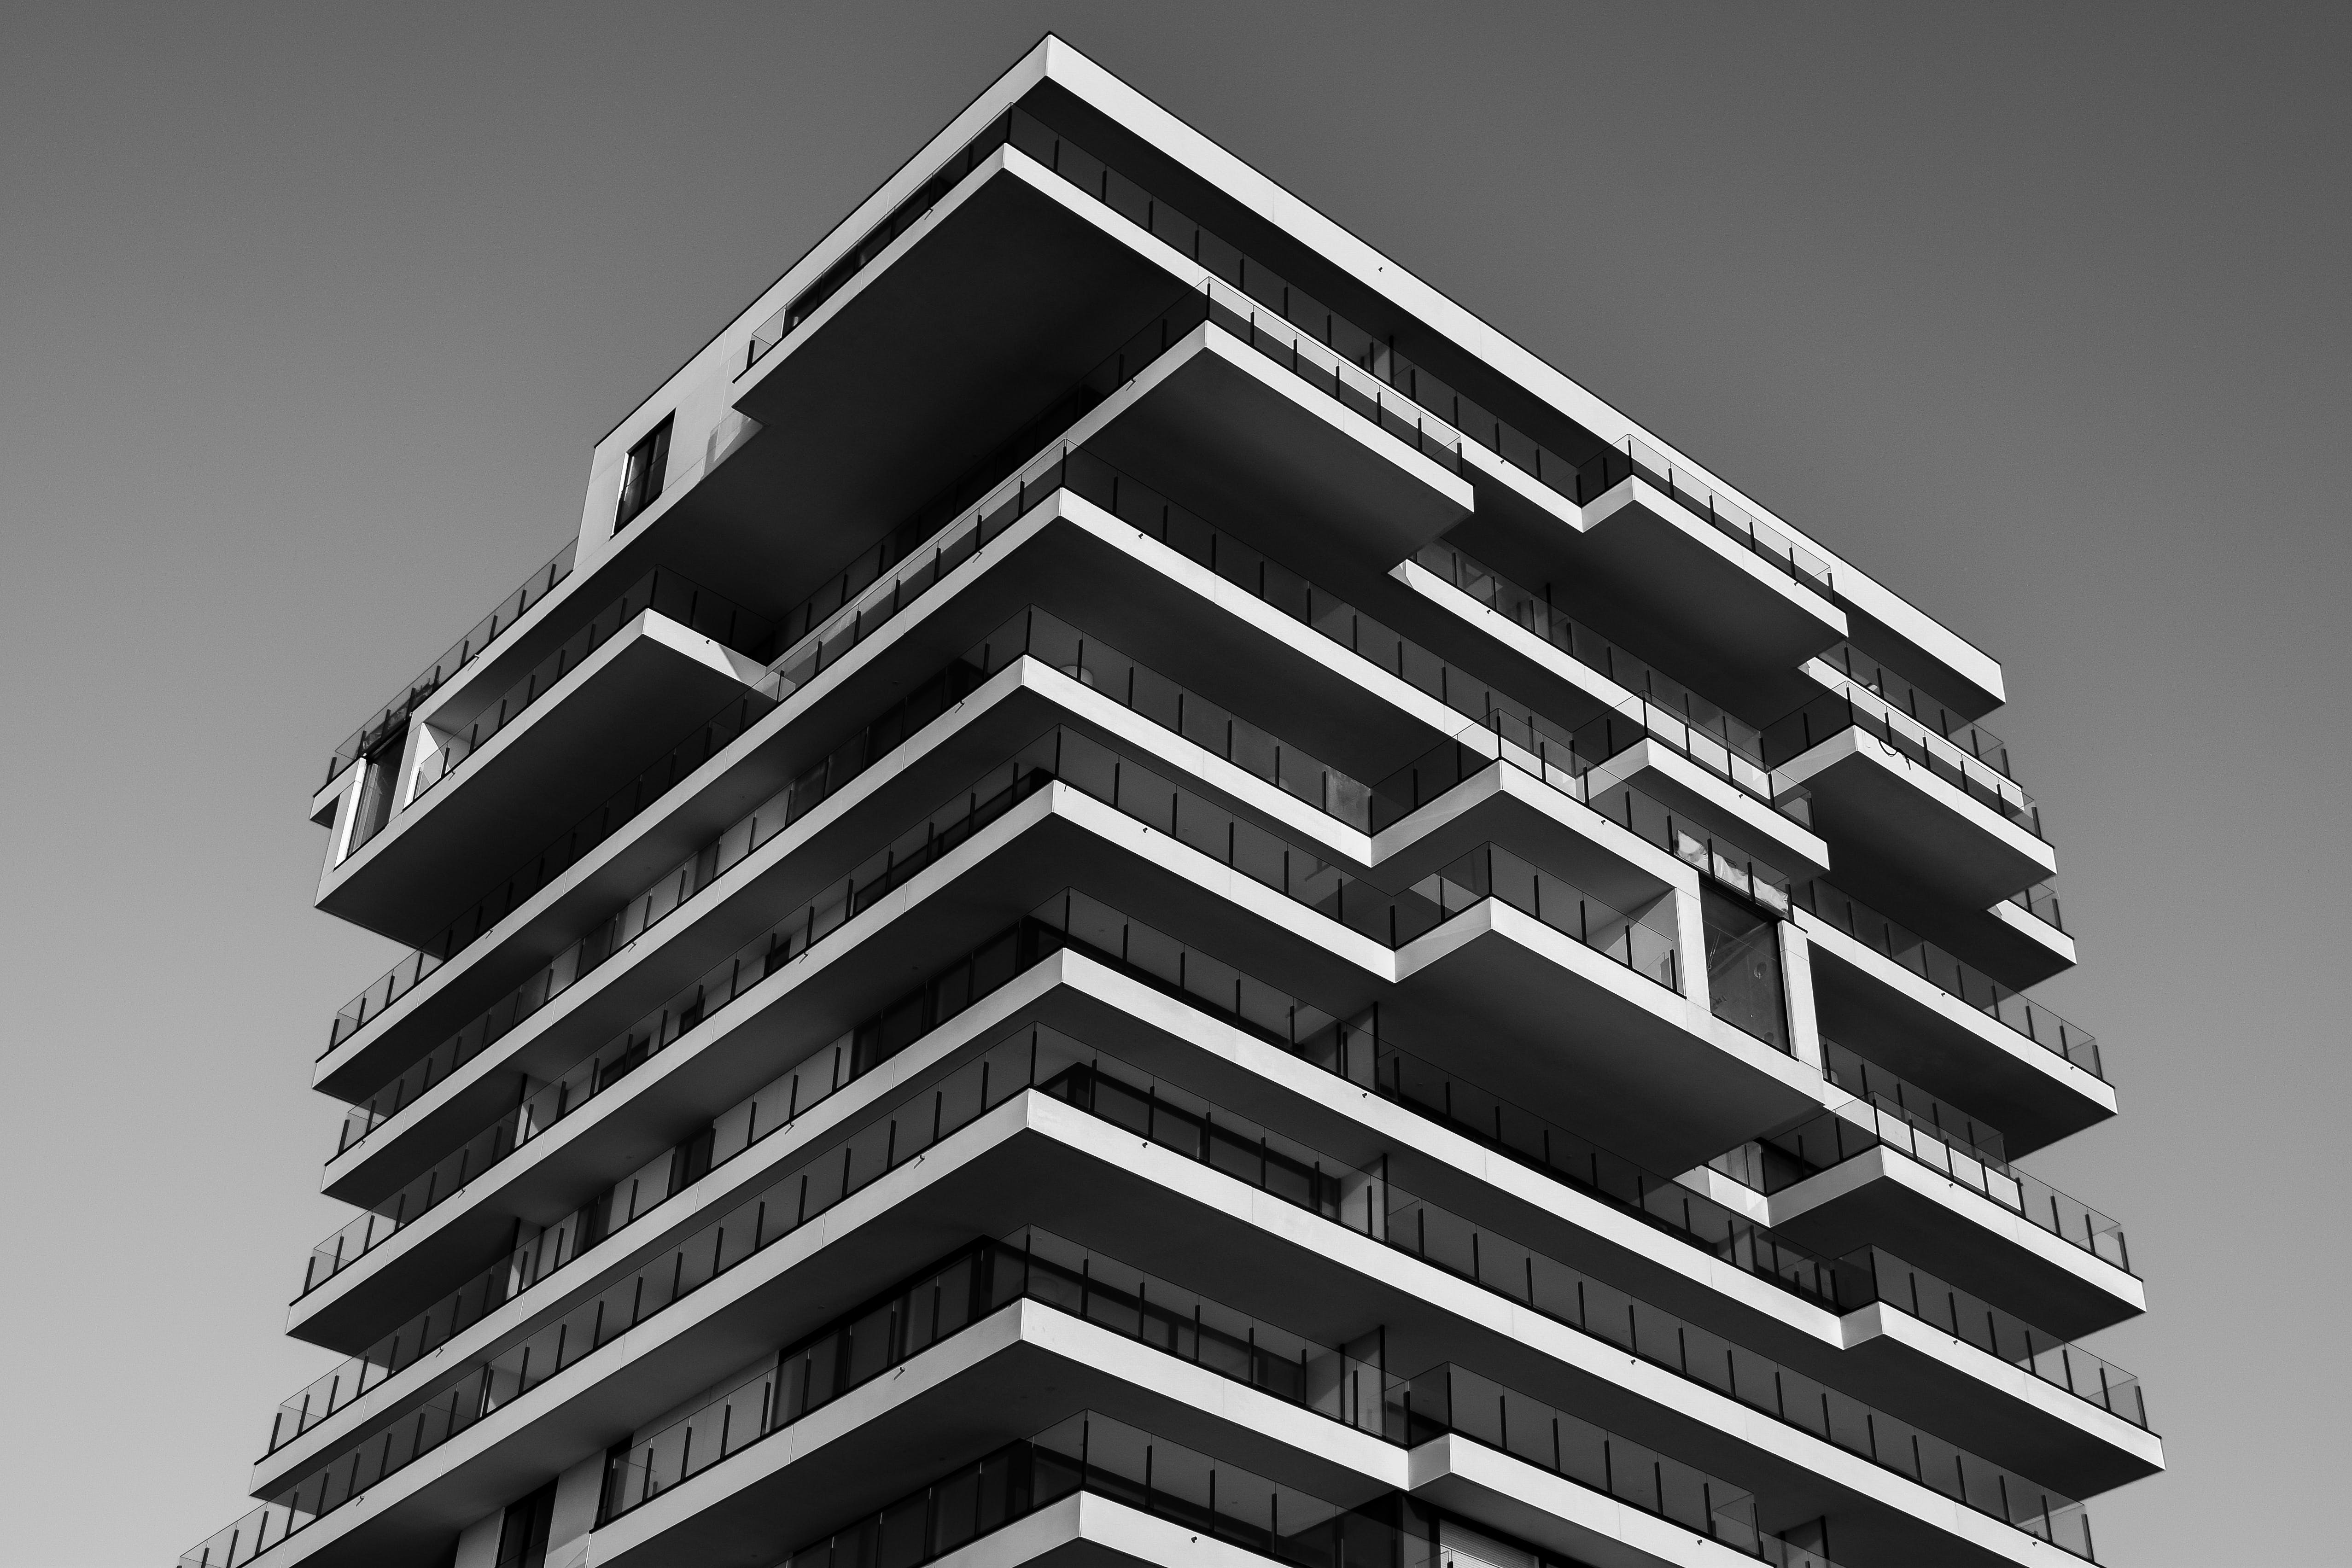 Free stock photo of black-and-white, building, office, glass